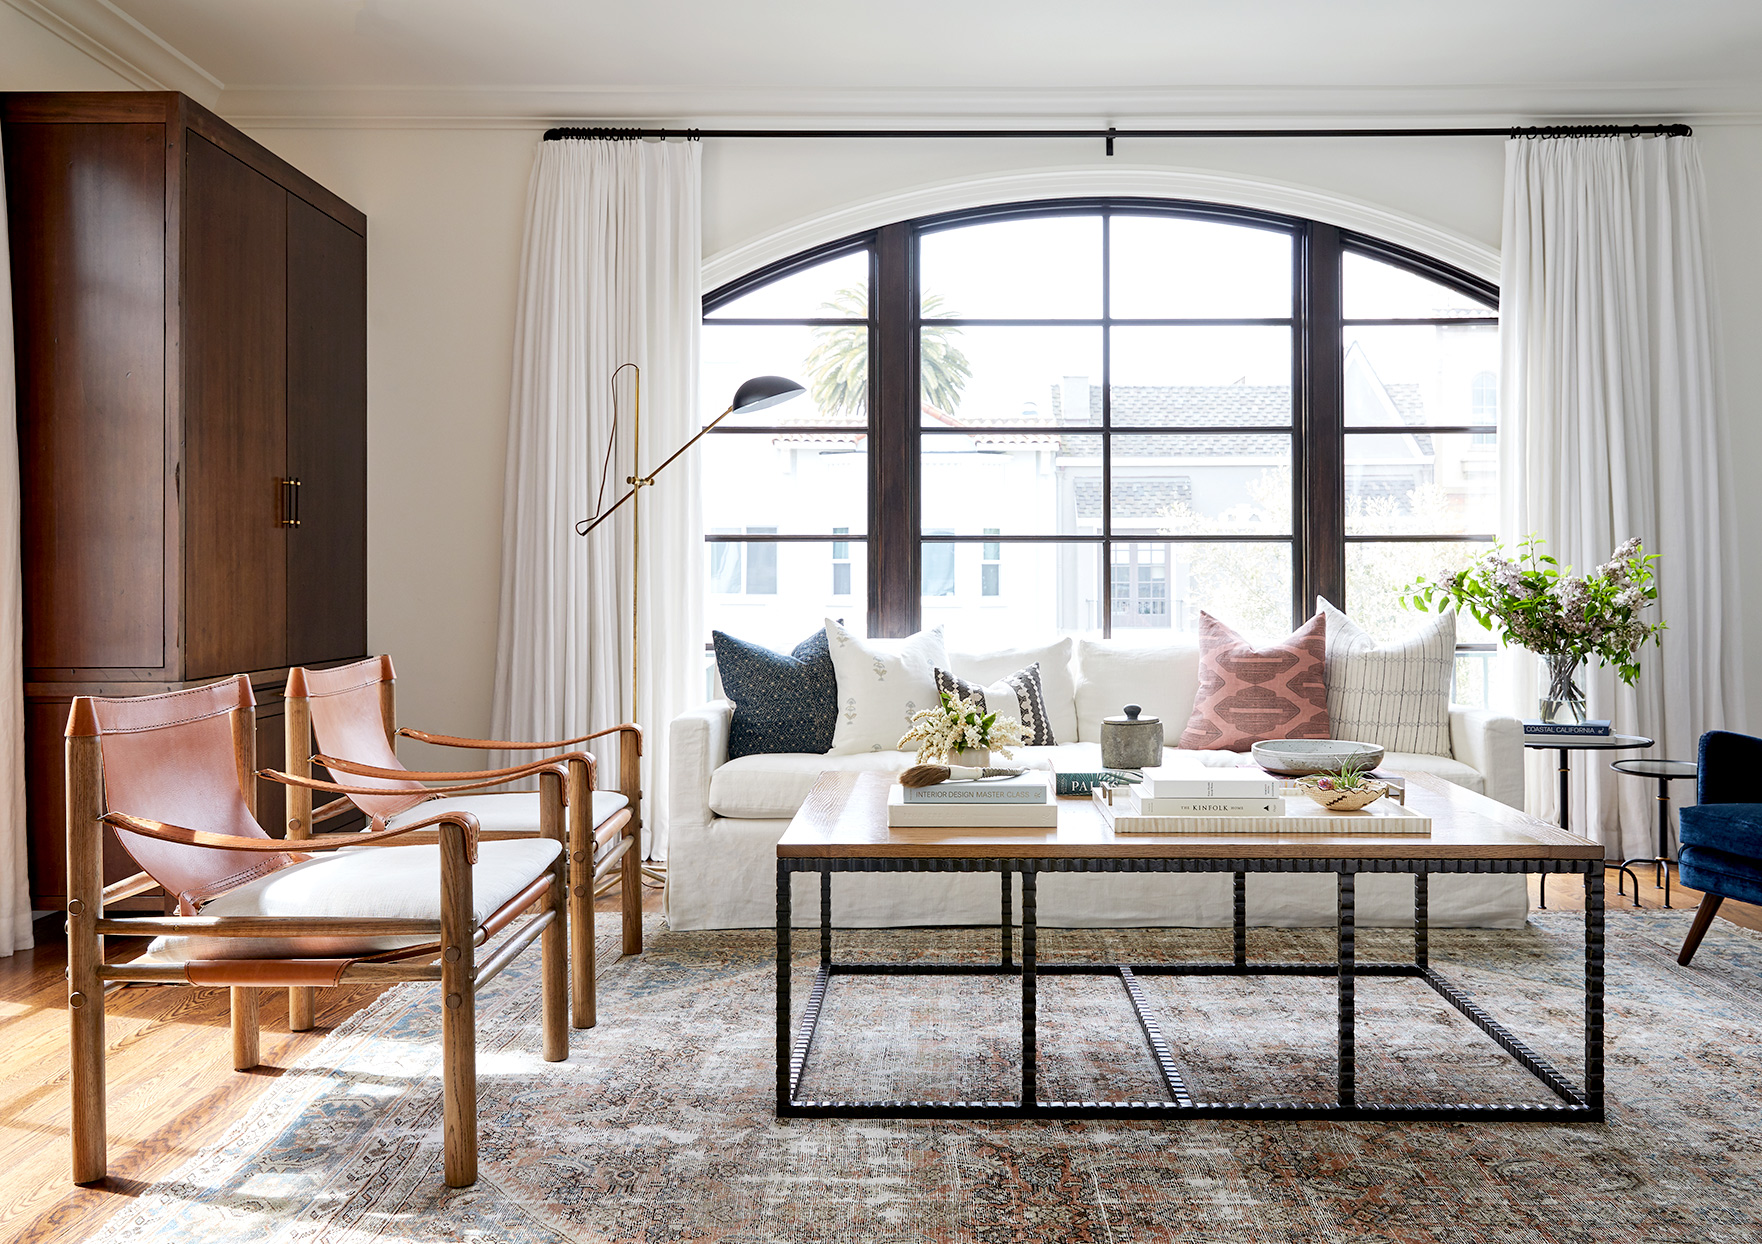 Living room with metal coffee table, couch, and chairs